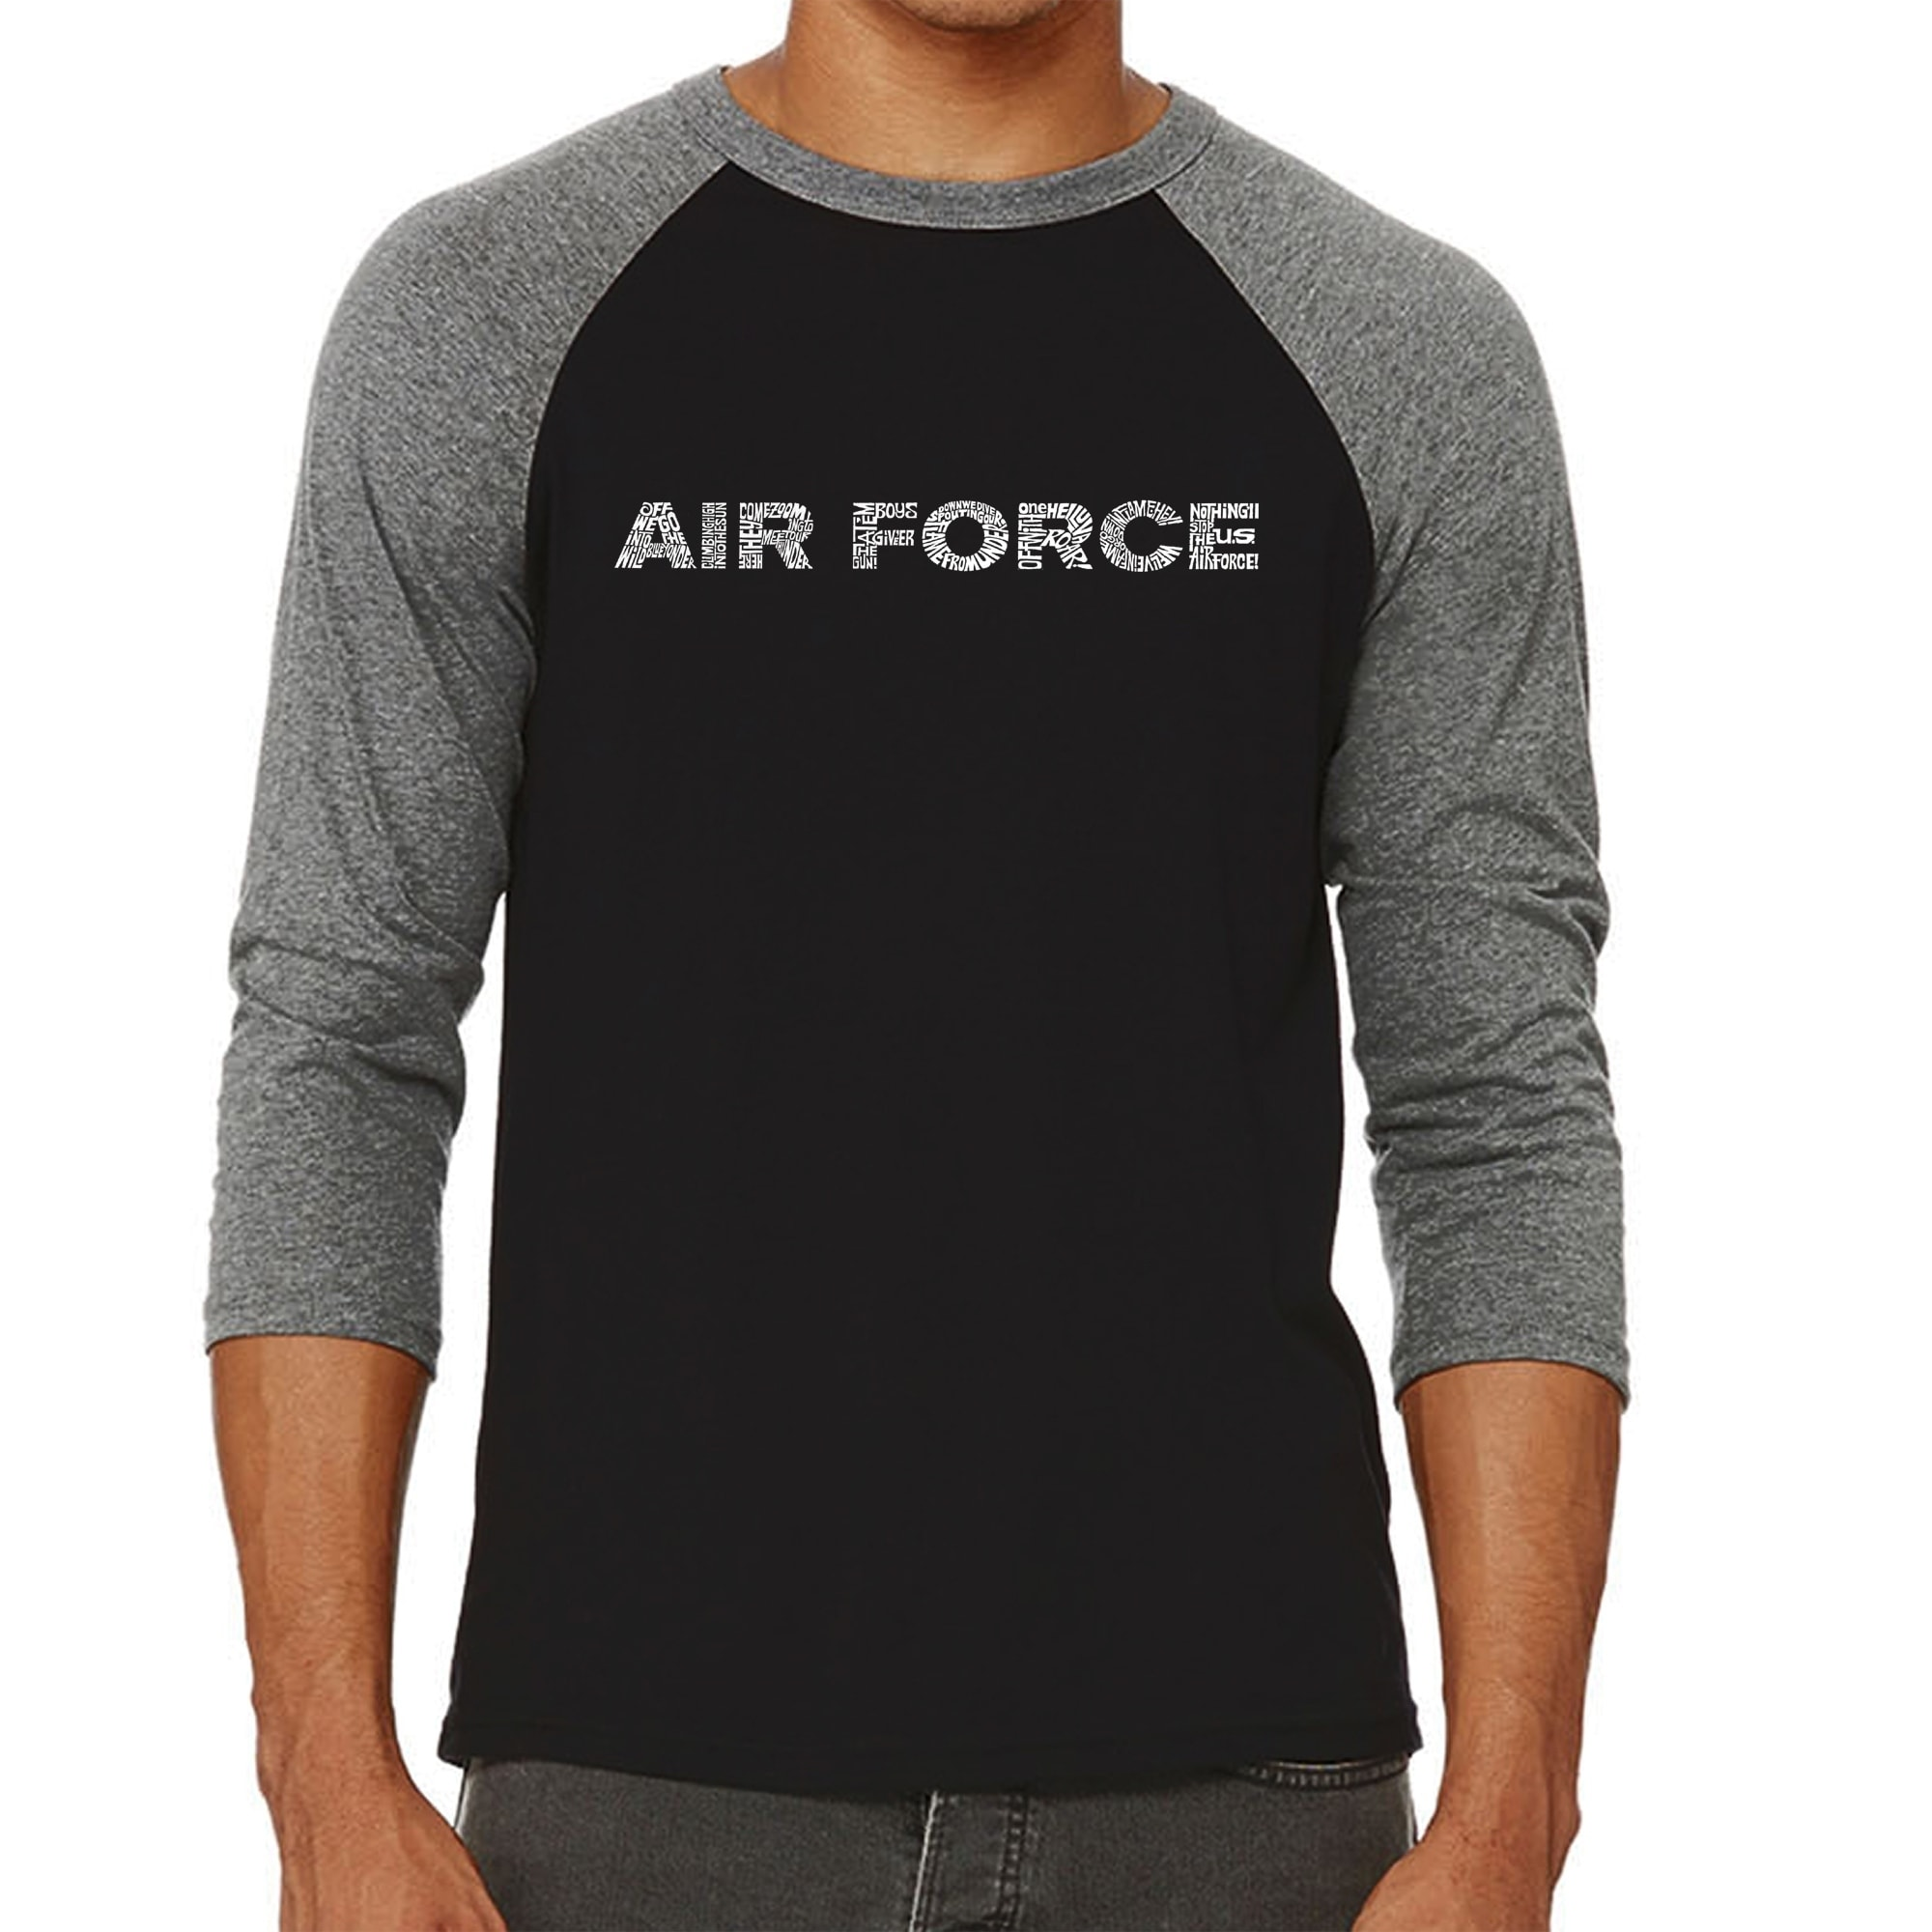 d3d0f19d9 Shop Los Angeles Pop Art Men's Raglan Baseball Word Art T-shirt - Lyrics To  The Air Force Song - Free Shipping On Orders Over $45 - Overstock - 20980873